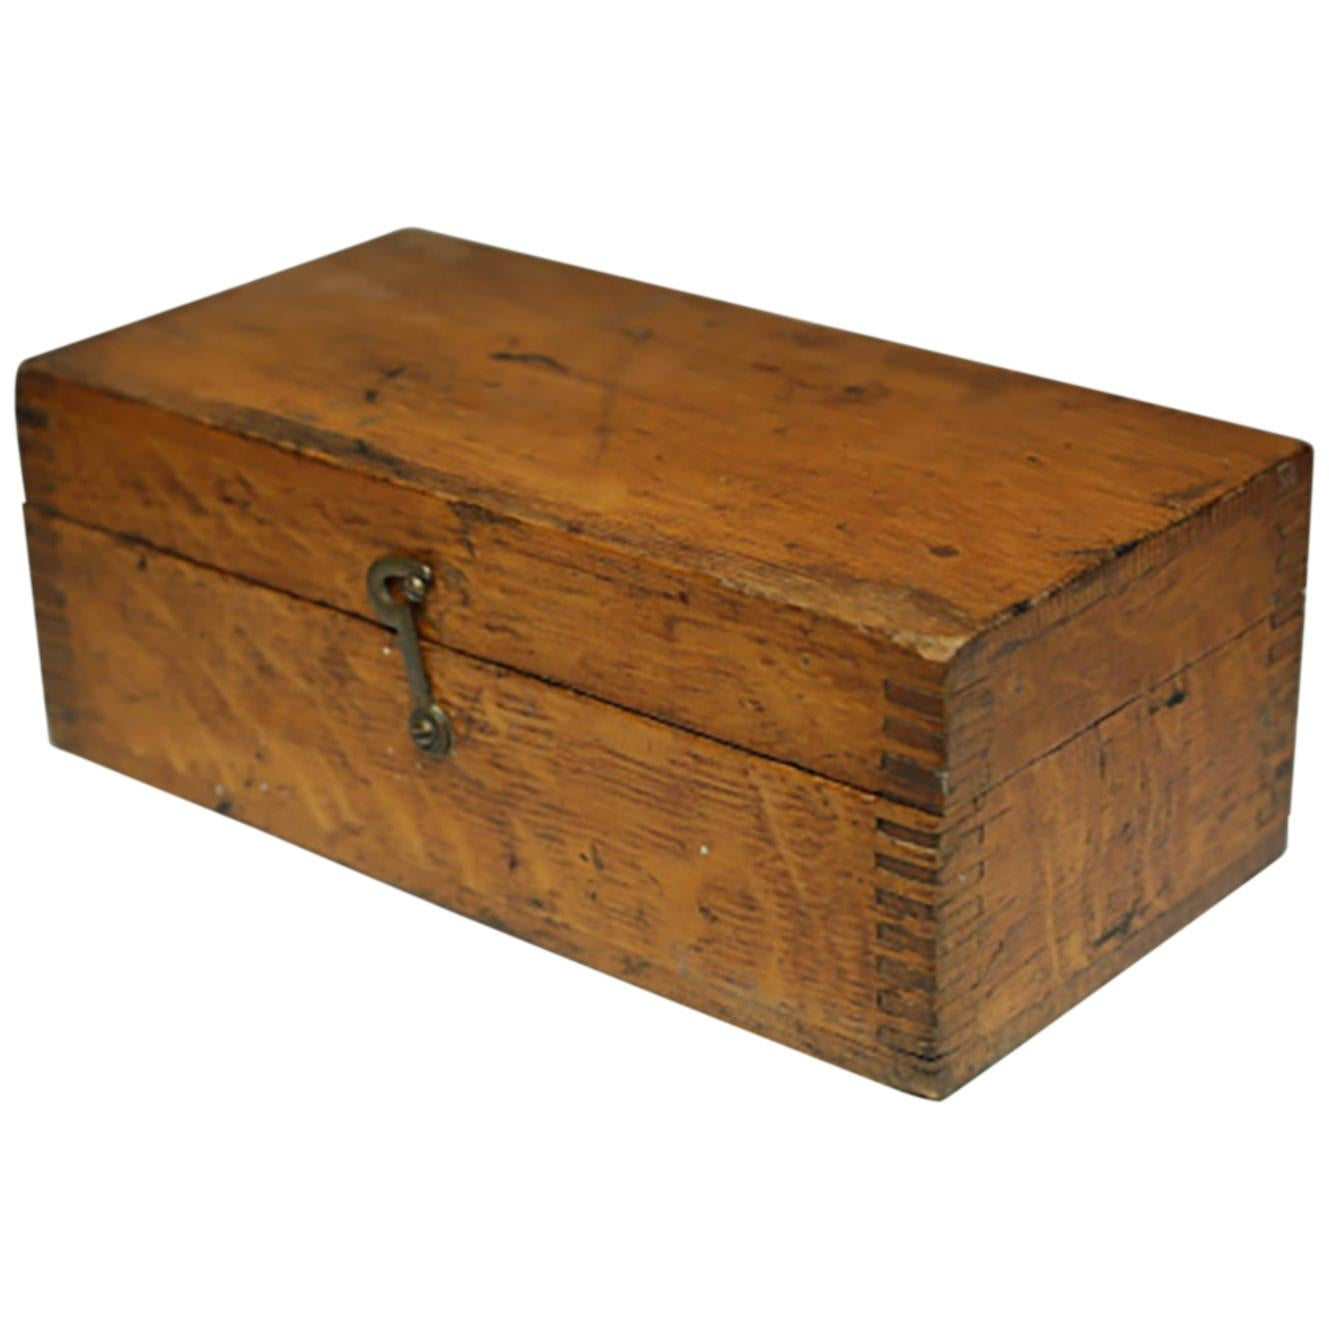 Reproduction Boxes/chests Vintage Wooden Box 1920s